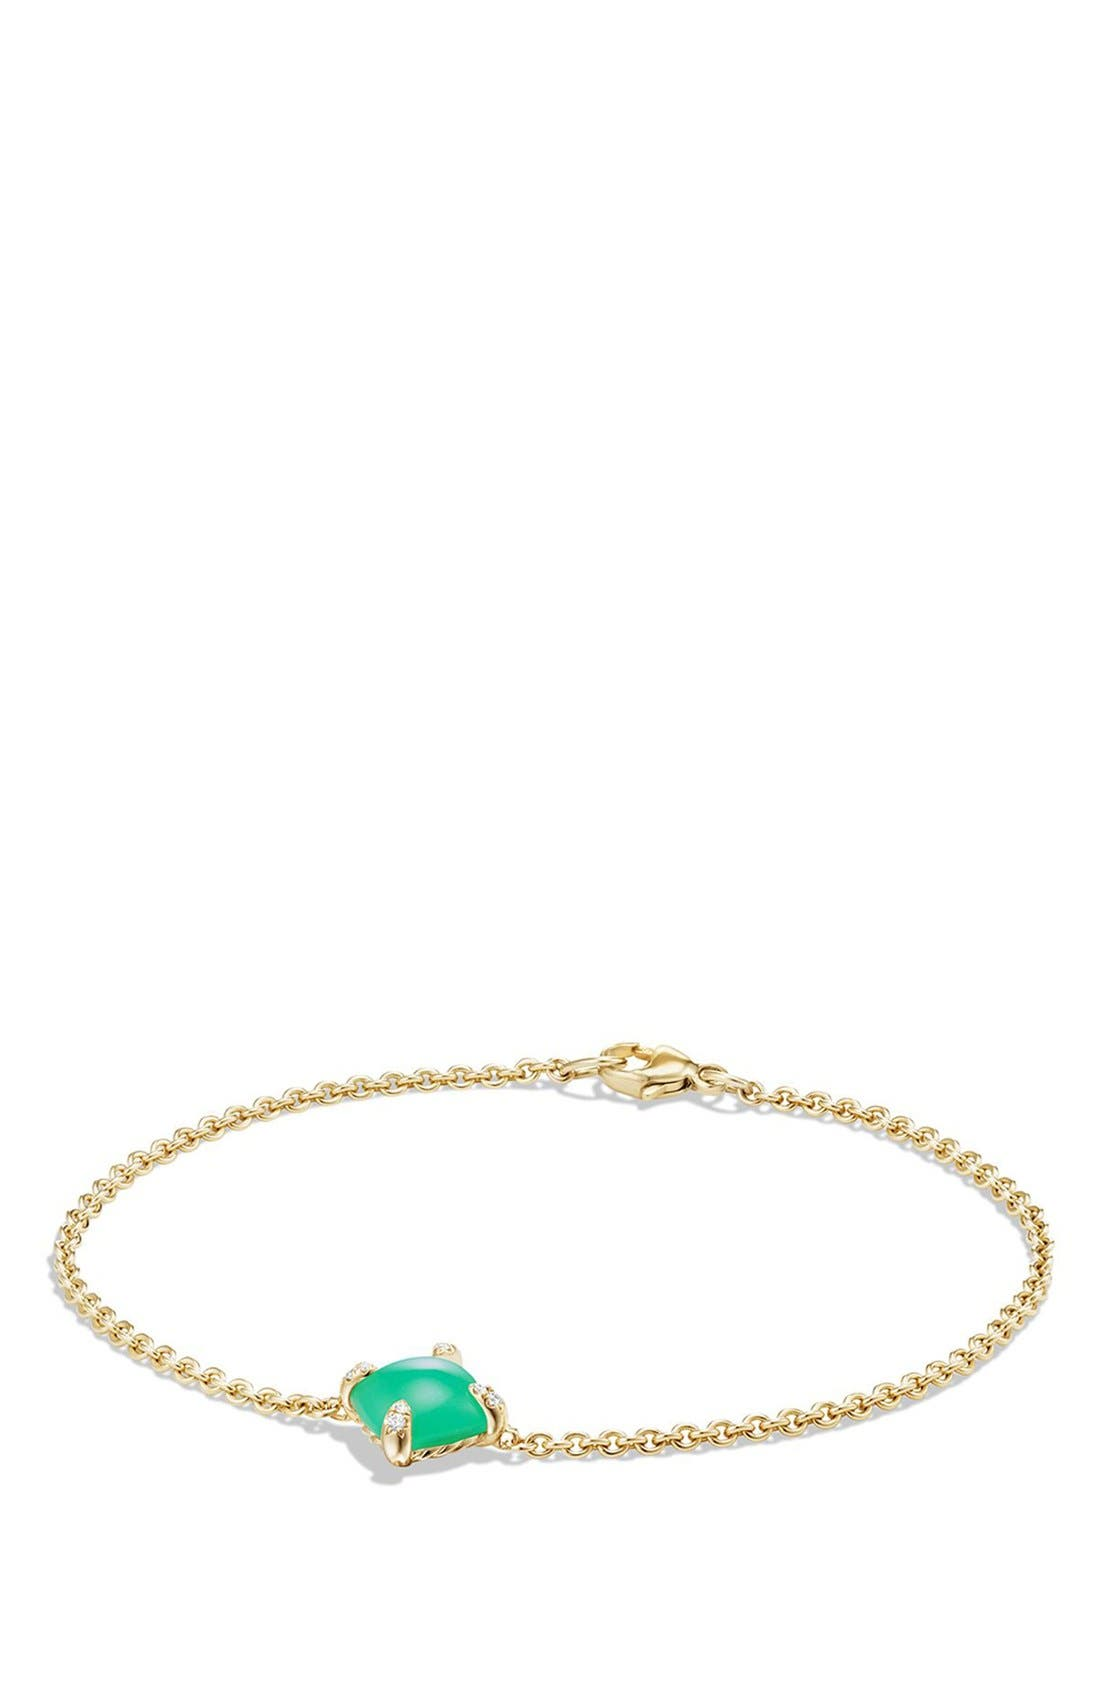 'Châtelaine' Bracelet with Diamonds in 18K Gold,                             Main thumbnail 1, color,                             CHRYSOPRASE